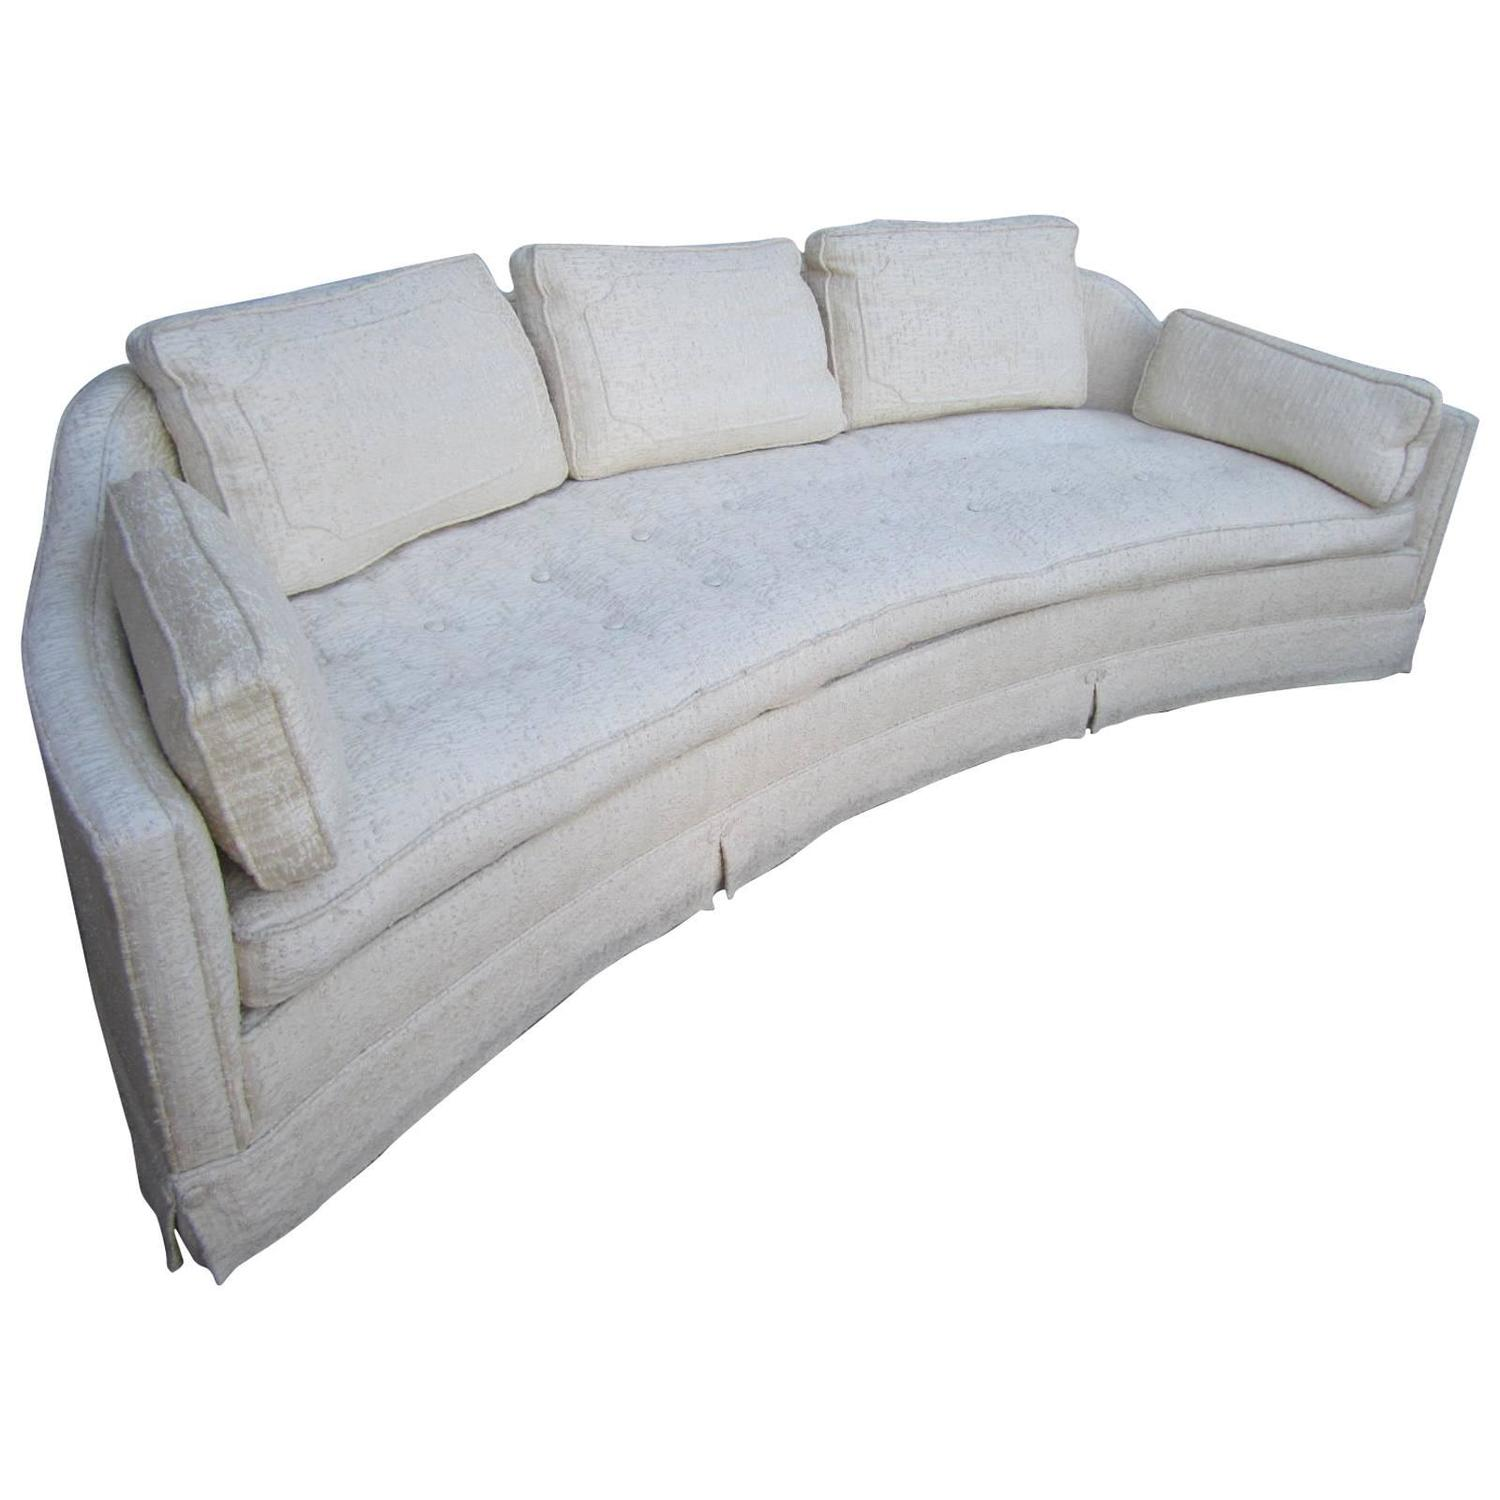 Lovely harvey probber style curved sofa mid century for Mid century modern curved sectional sofa